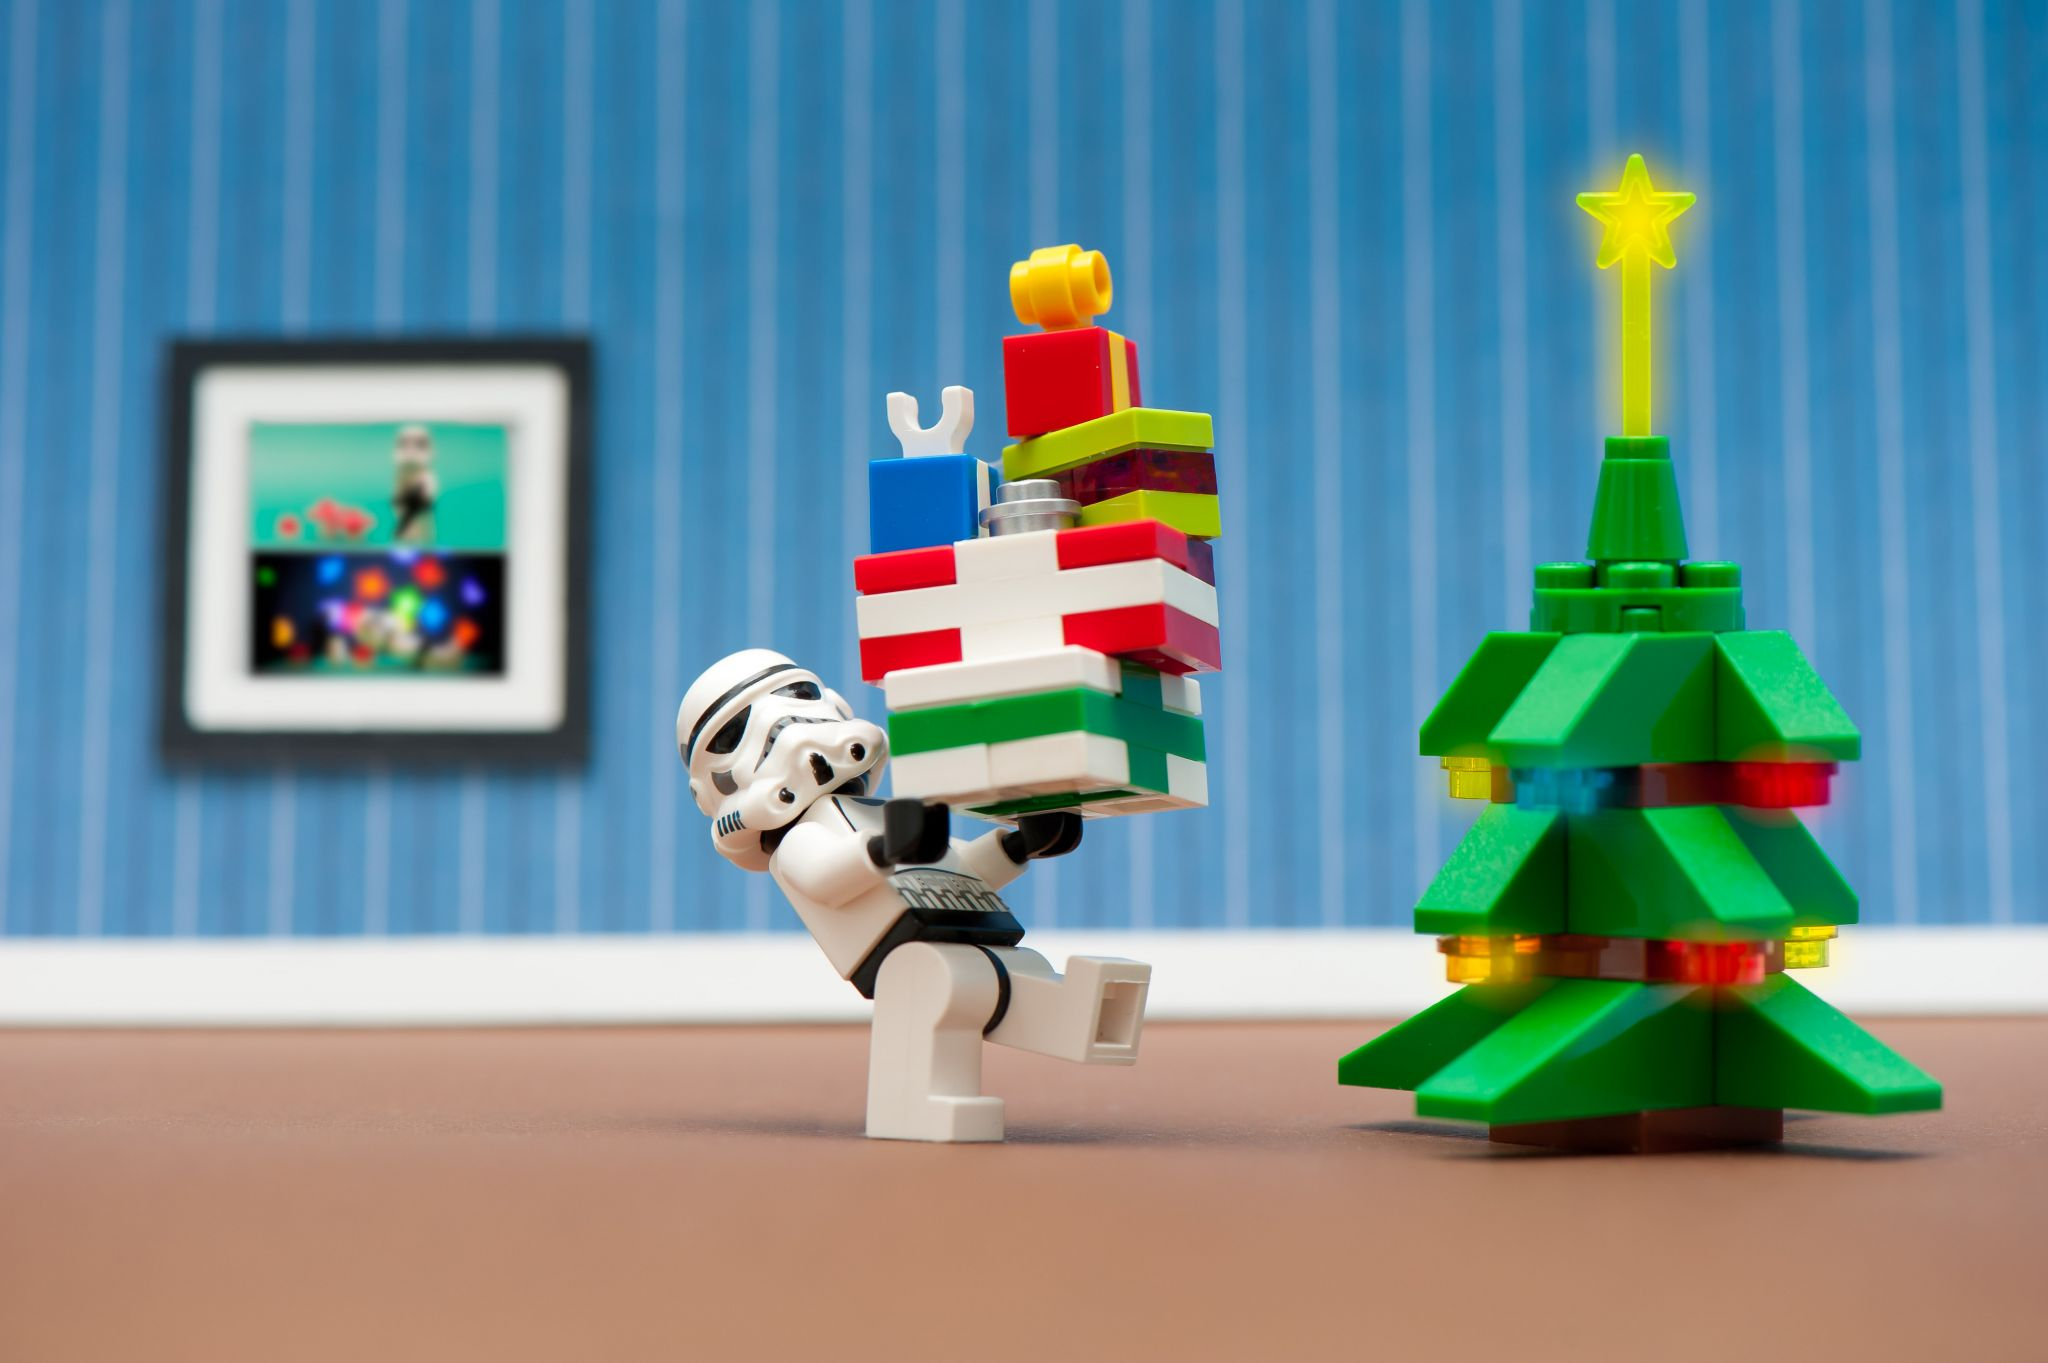 Stormtrooper's Christmas by Kenny Louie